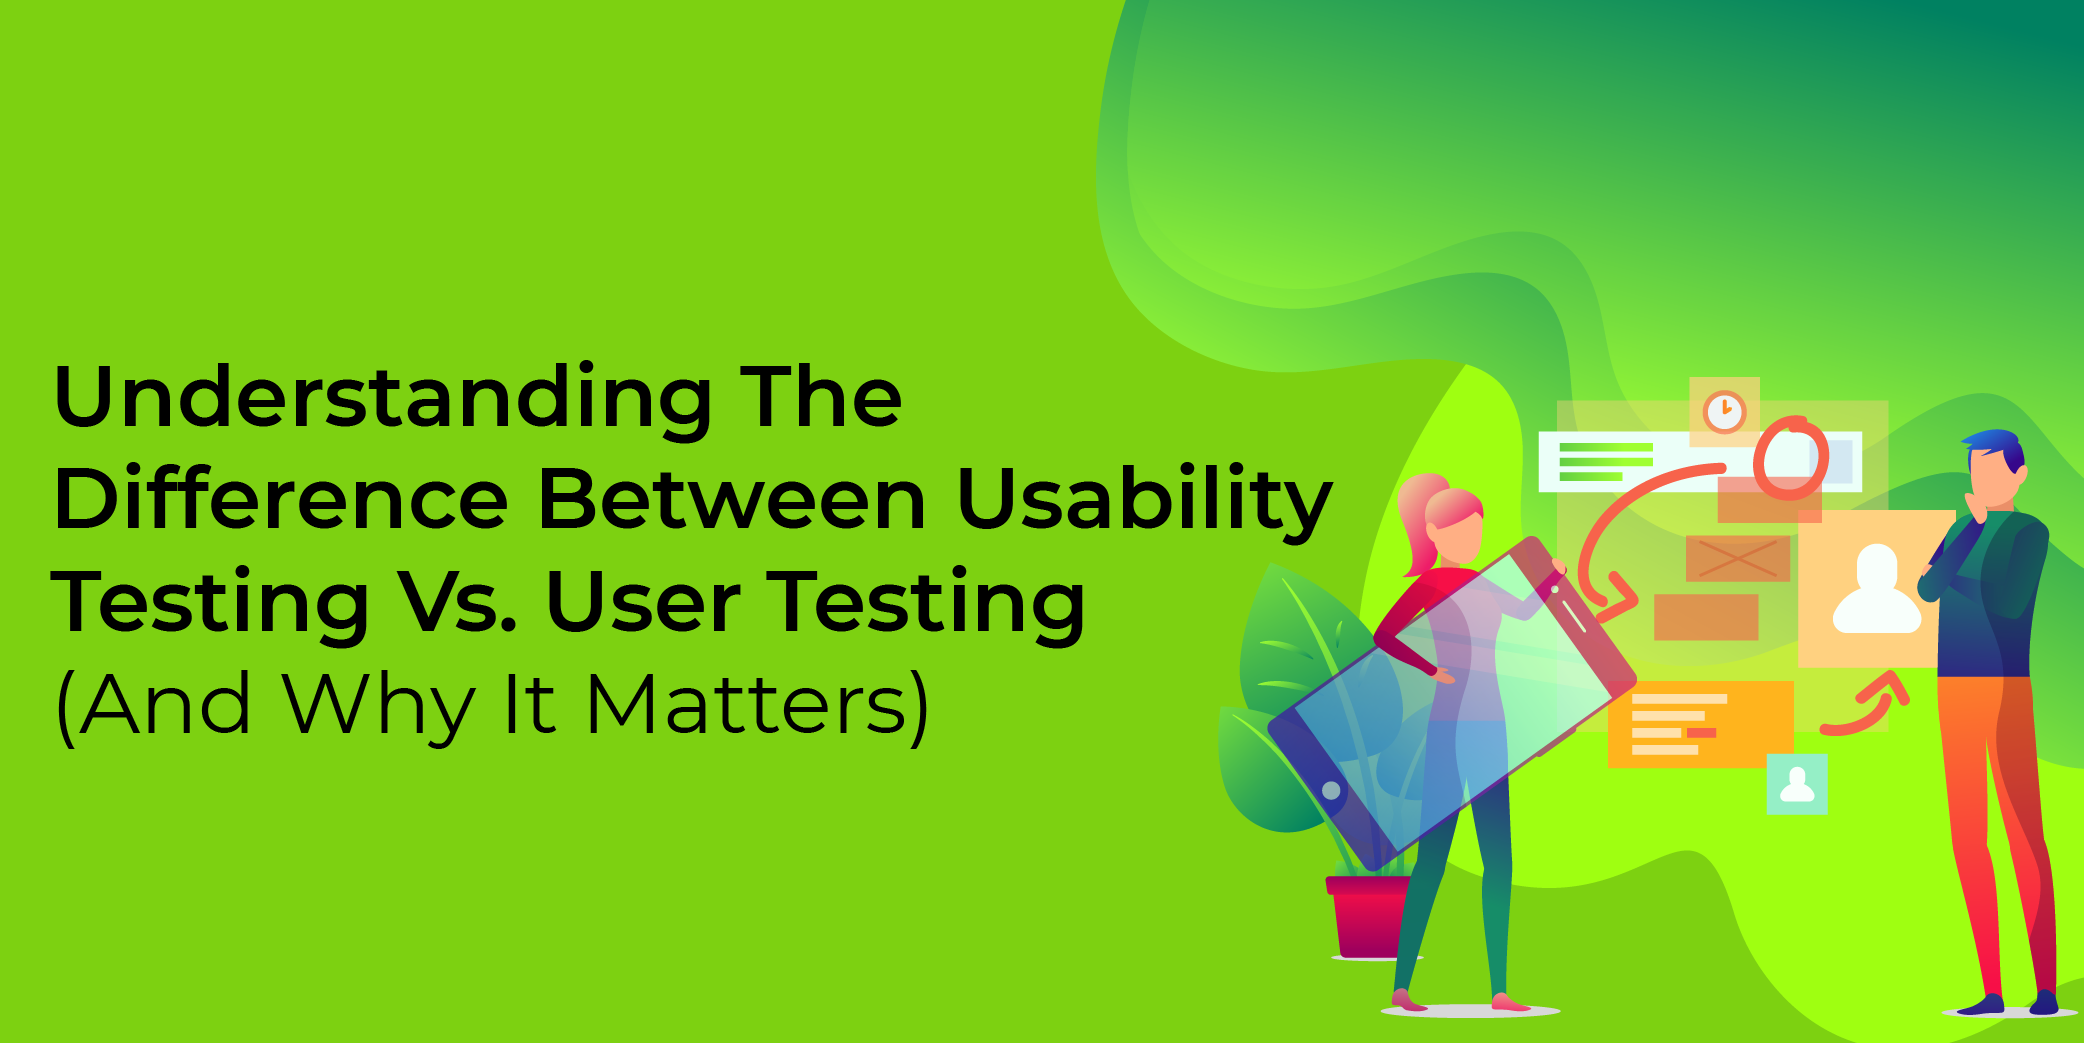 Understanding The Difference Between Usability Testing Vs. User Testing (And Why It Matters)